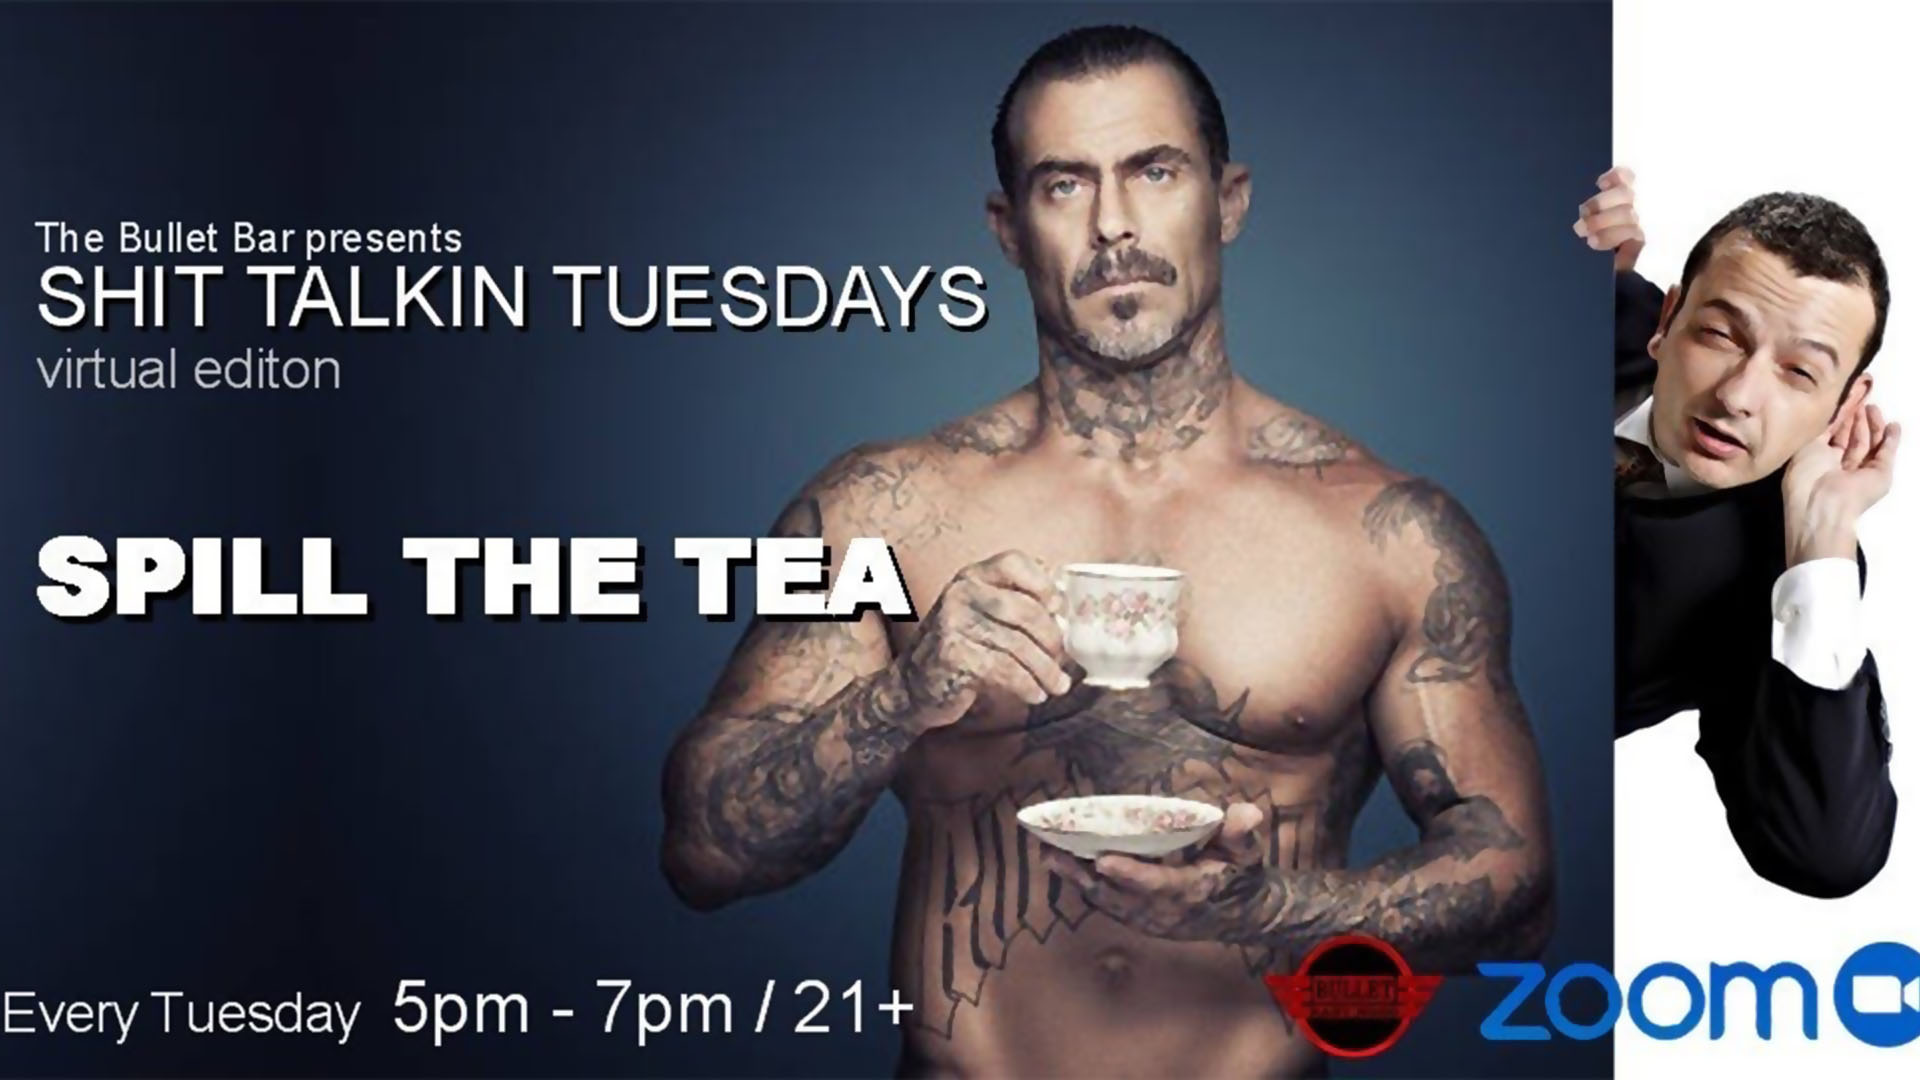 The Bullet Bar Presents SHIT TALKIN' TUESDAYS: Every Tuesday from 5-7 PM / 21+